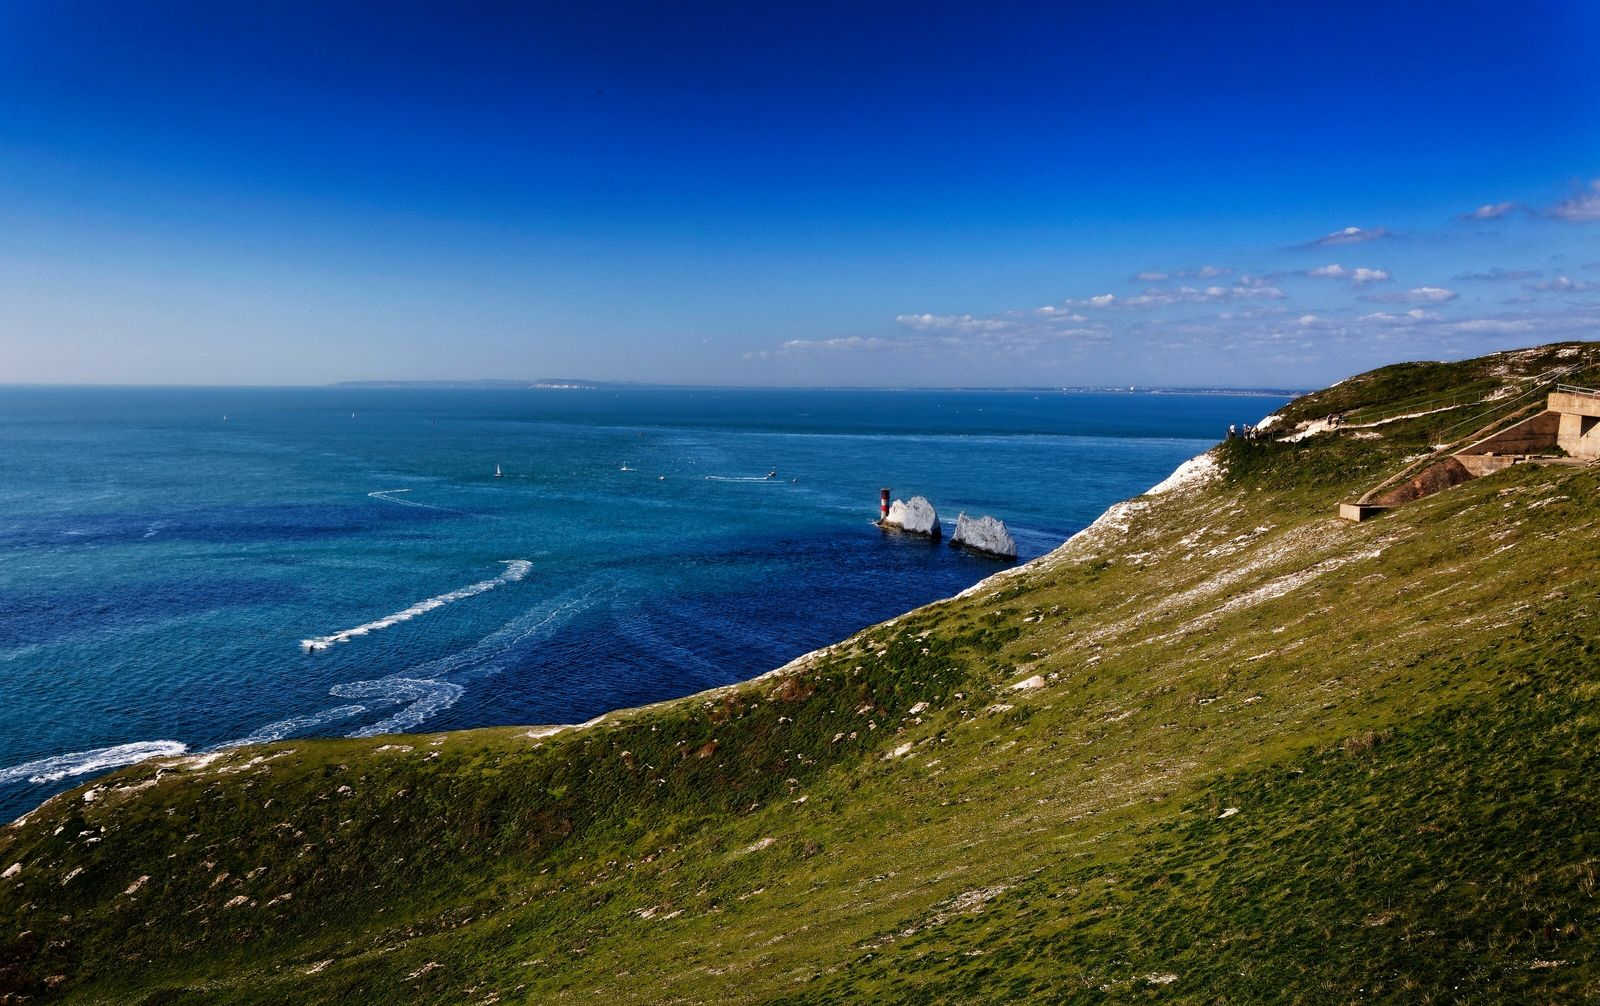 Above Alum Bay and the famous 'Needles' off the coast of the Isle of Wight, the ...